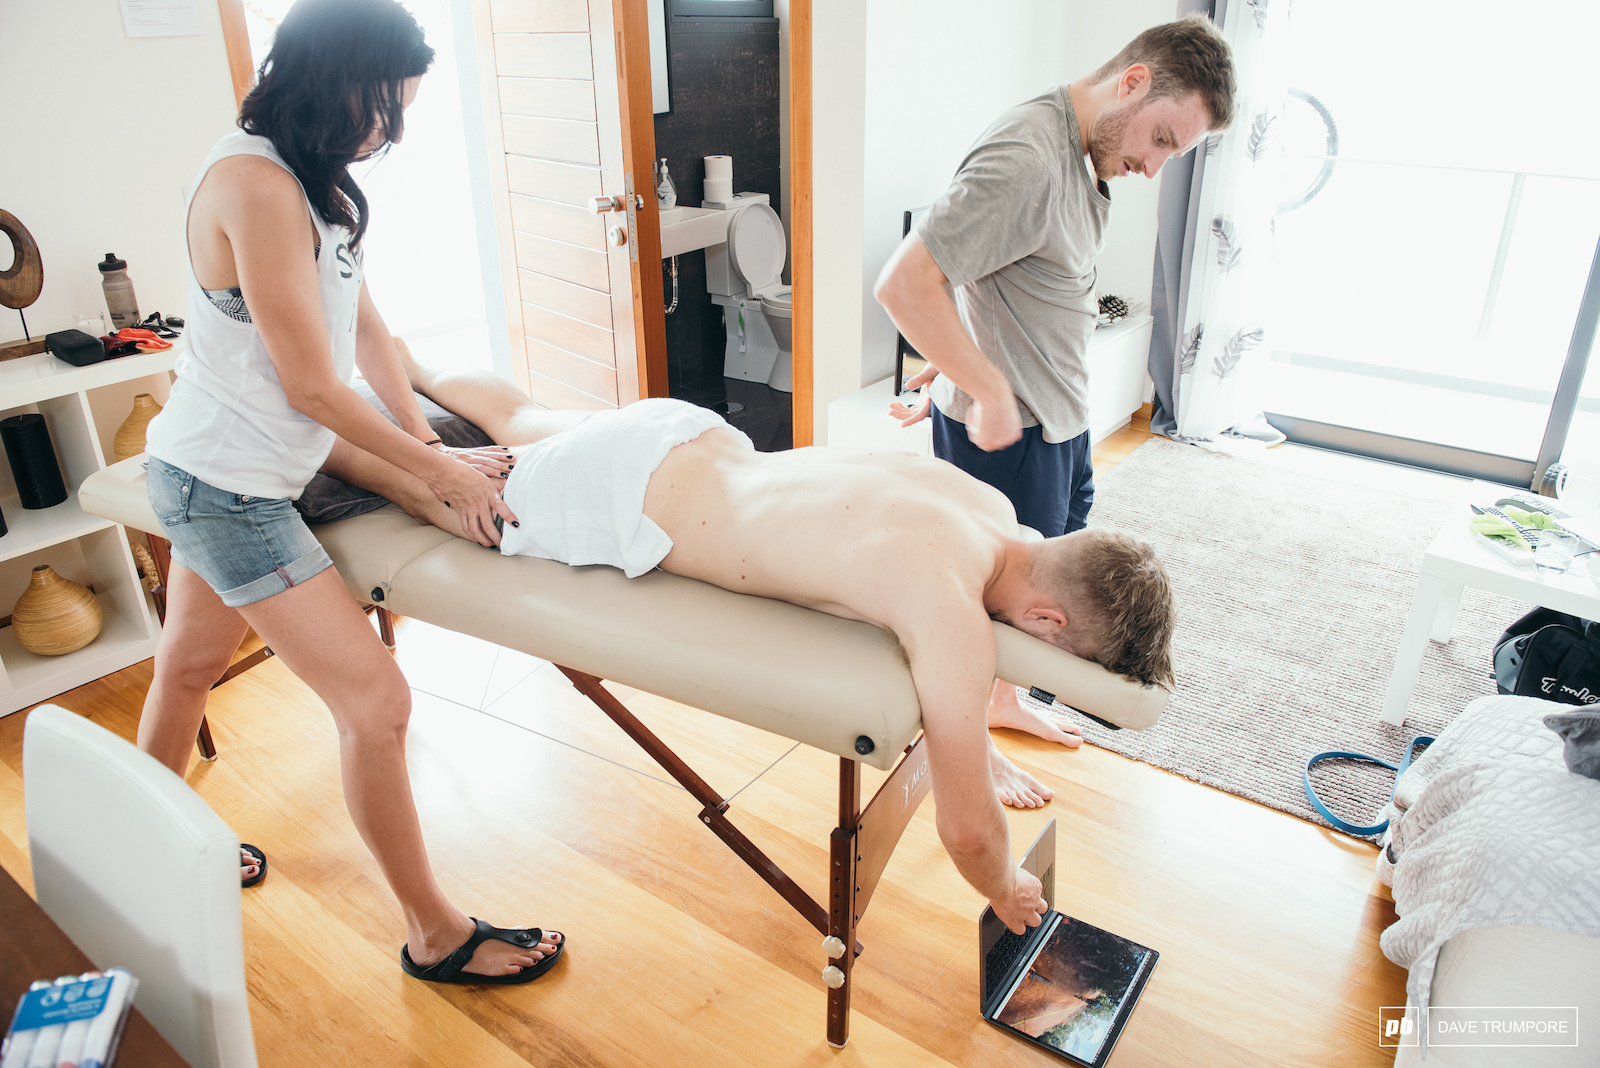 Remi Gauvin multi-tasking by watching helmet cam footage during his evening physio session